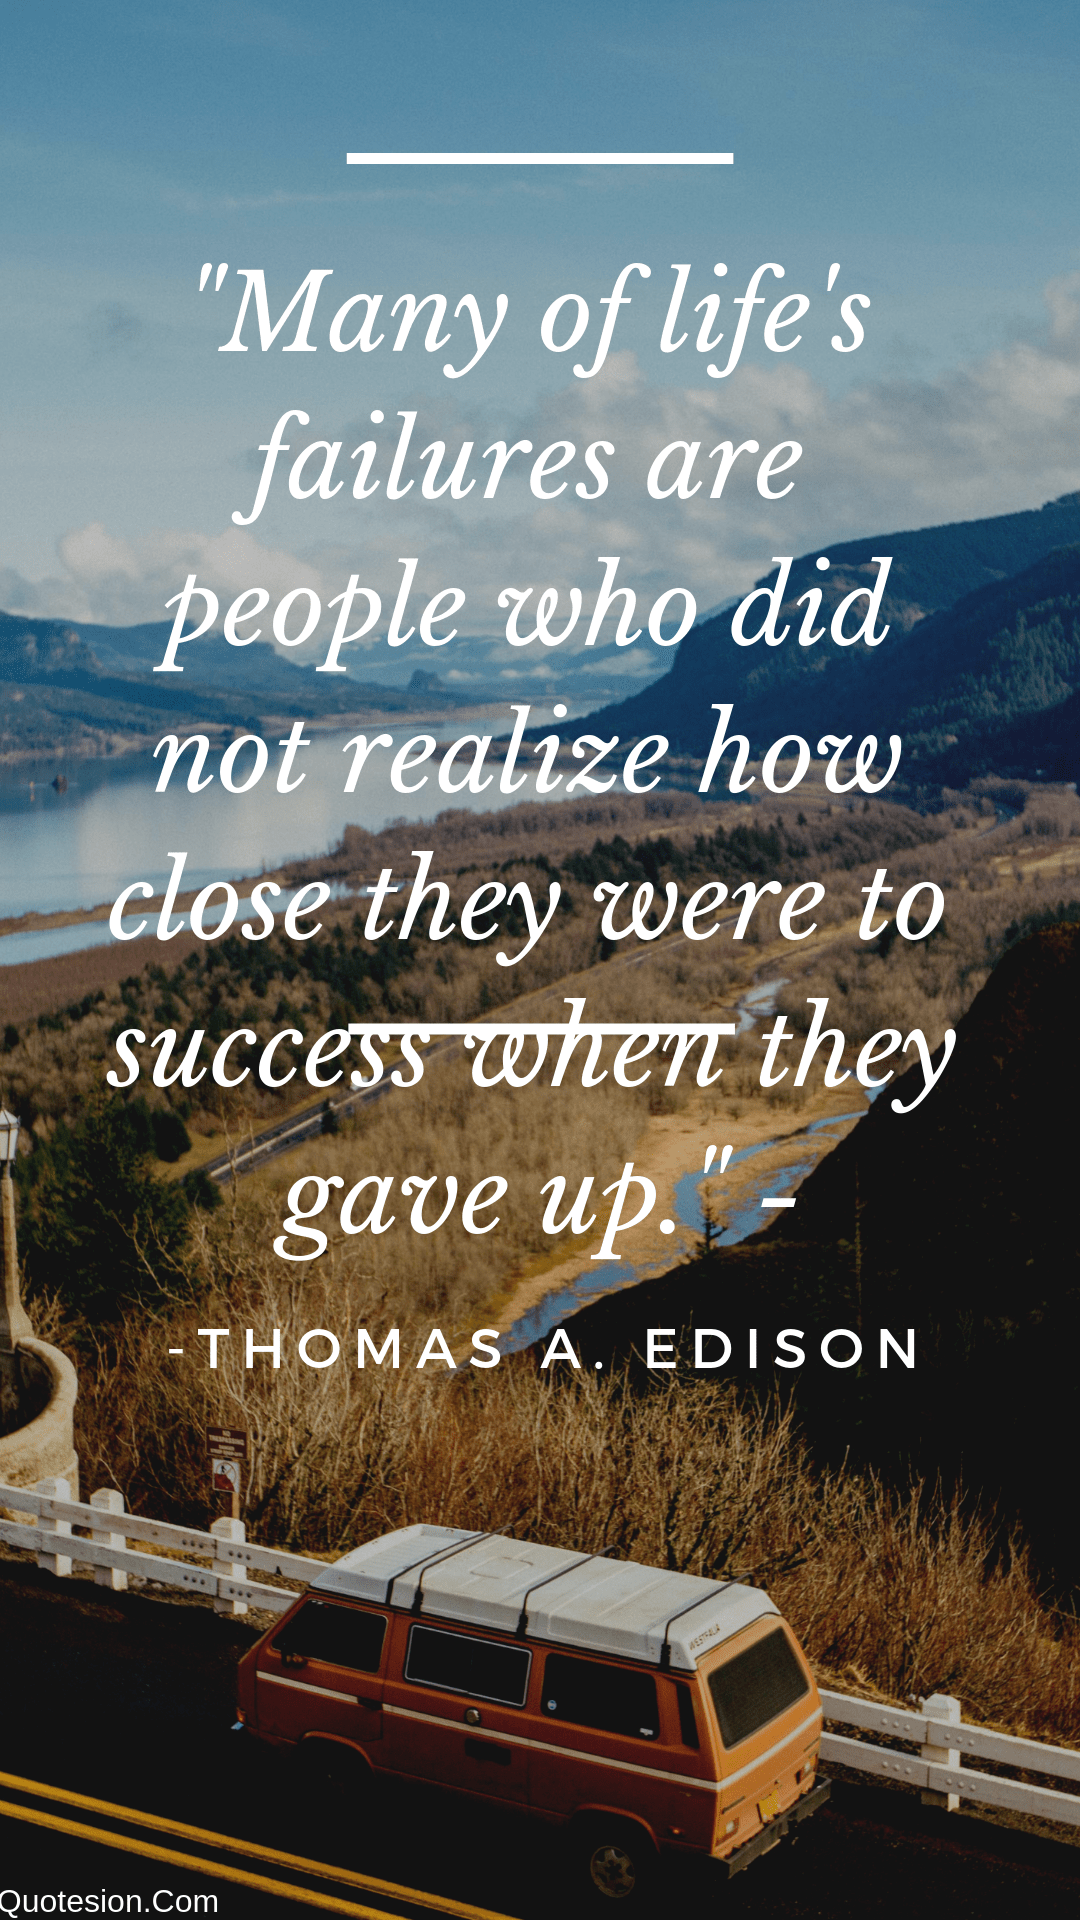 """Many of life's failures are people who did not realize how close they were to success when they gave up."" -Thomas A. Edison- [1920×1080]"